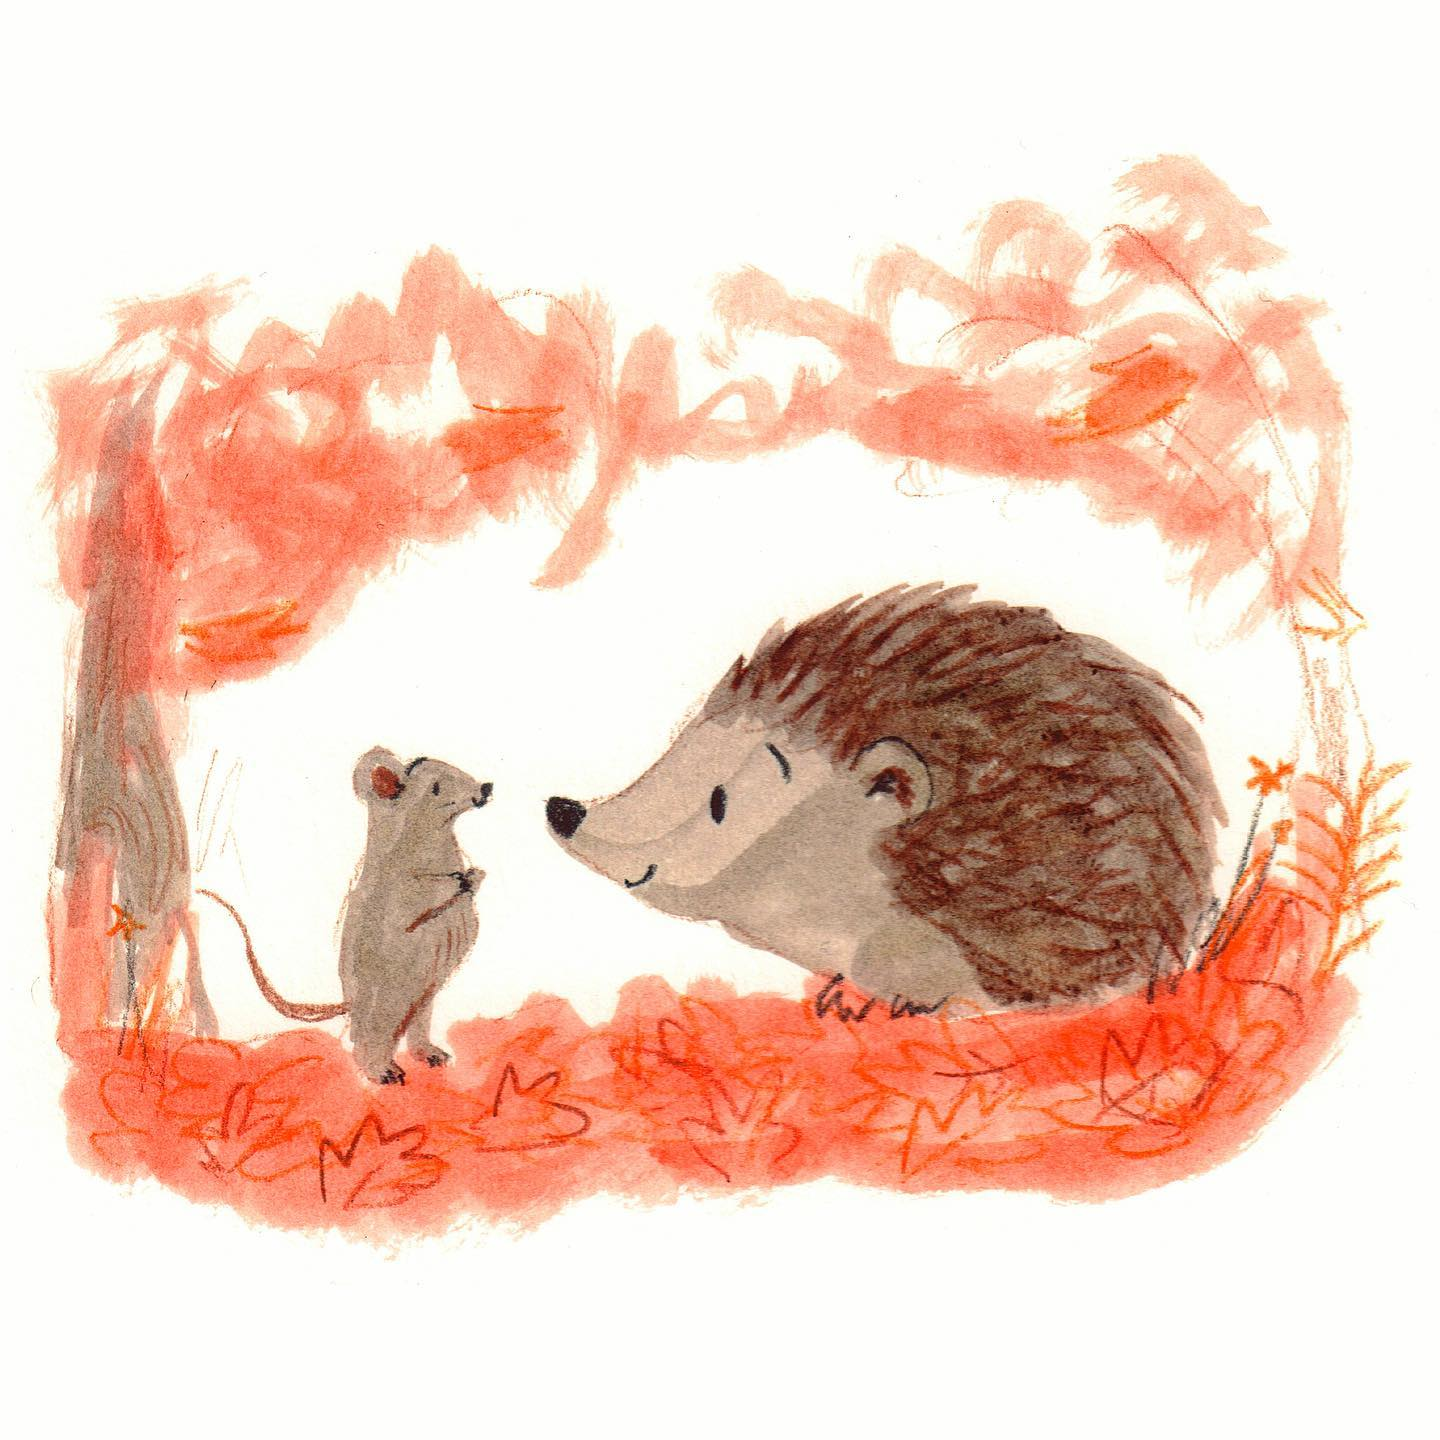 Hedgehog and Mouse Lucy Dillamore Illustration